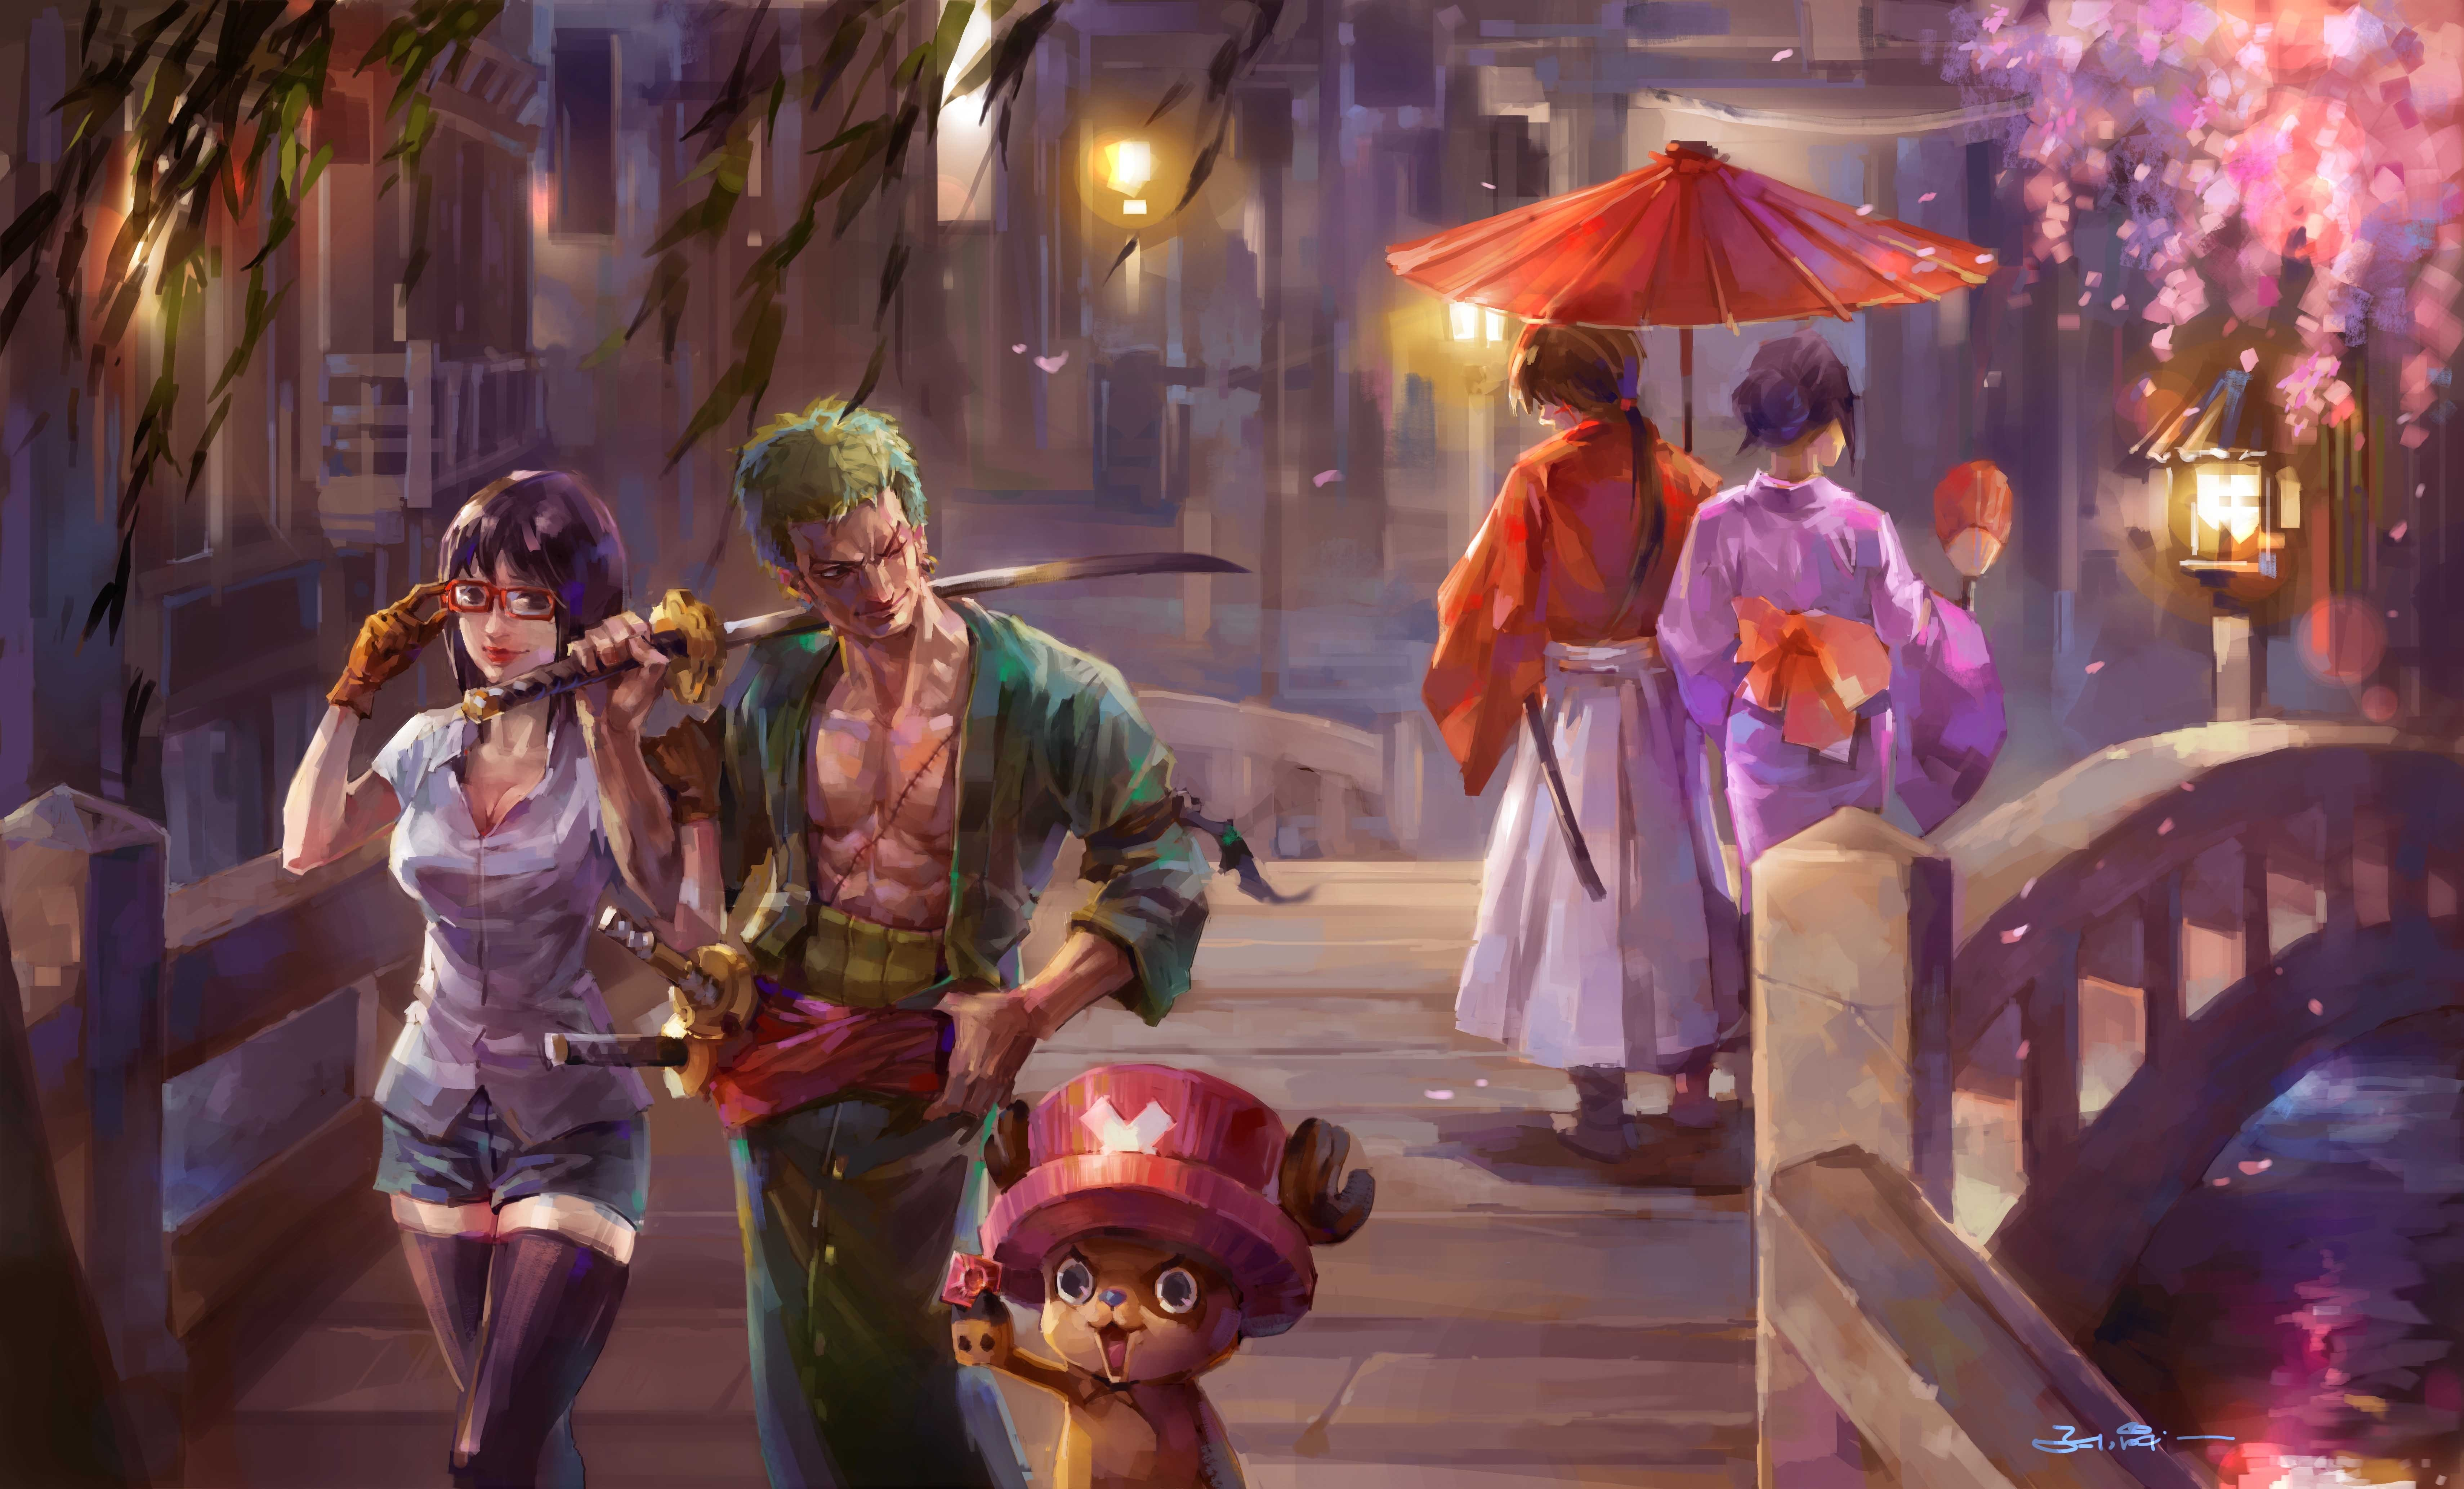 One Piece Painting 5k Hd Anime 4k Wallpapers Images Backgrounds Photos And Pictures